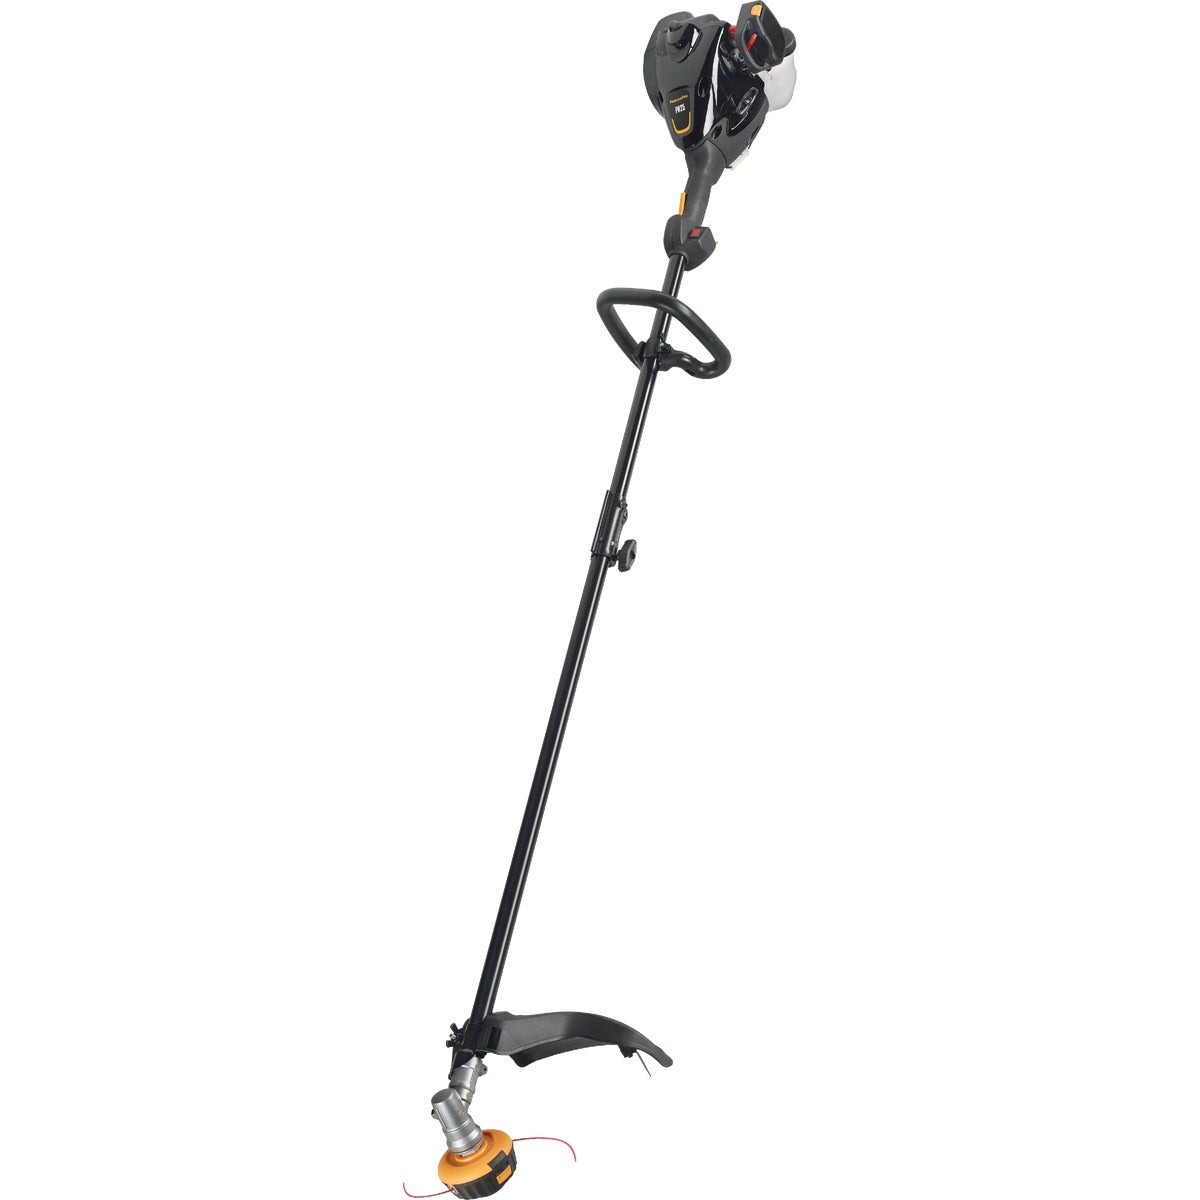 "17"" GAS STRING TRIMMER - 967185701 by Poulan"